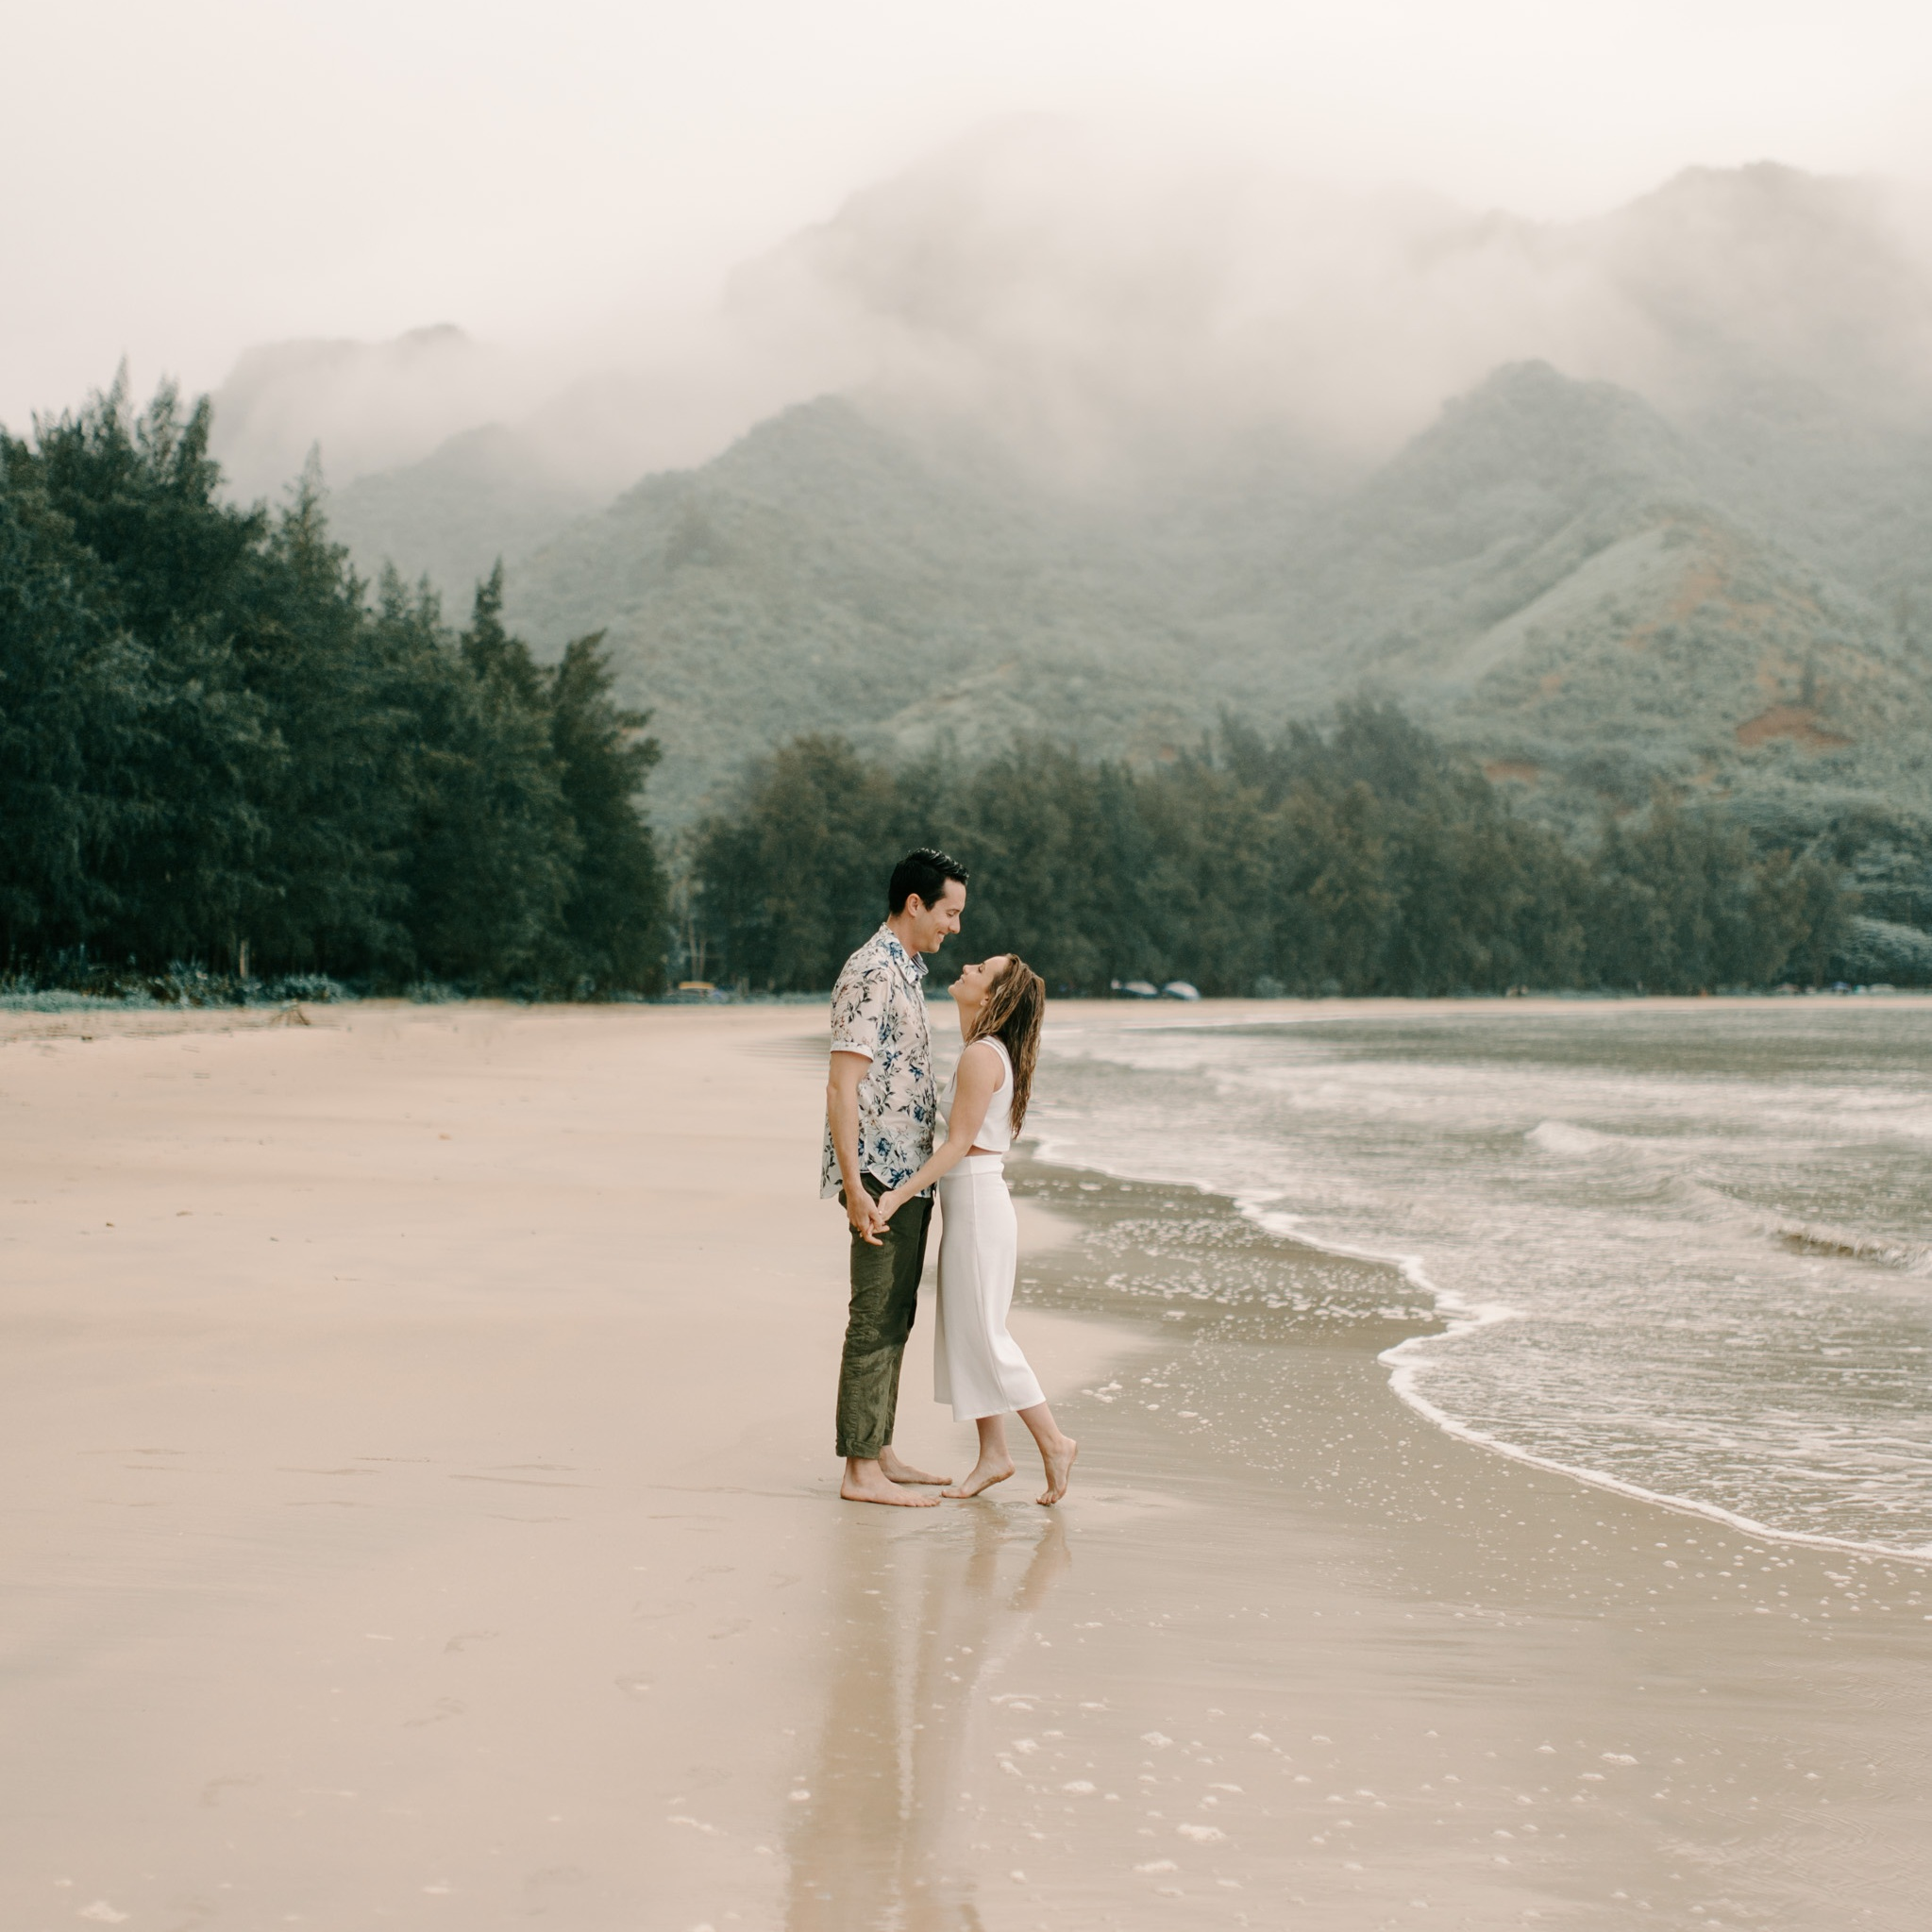 Gorgeous+Kahana+Bay+Rainstorm+Engagement+Session+By+Hawaii+Wedding+Photographer+Desiree+Leilani